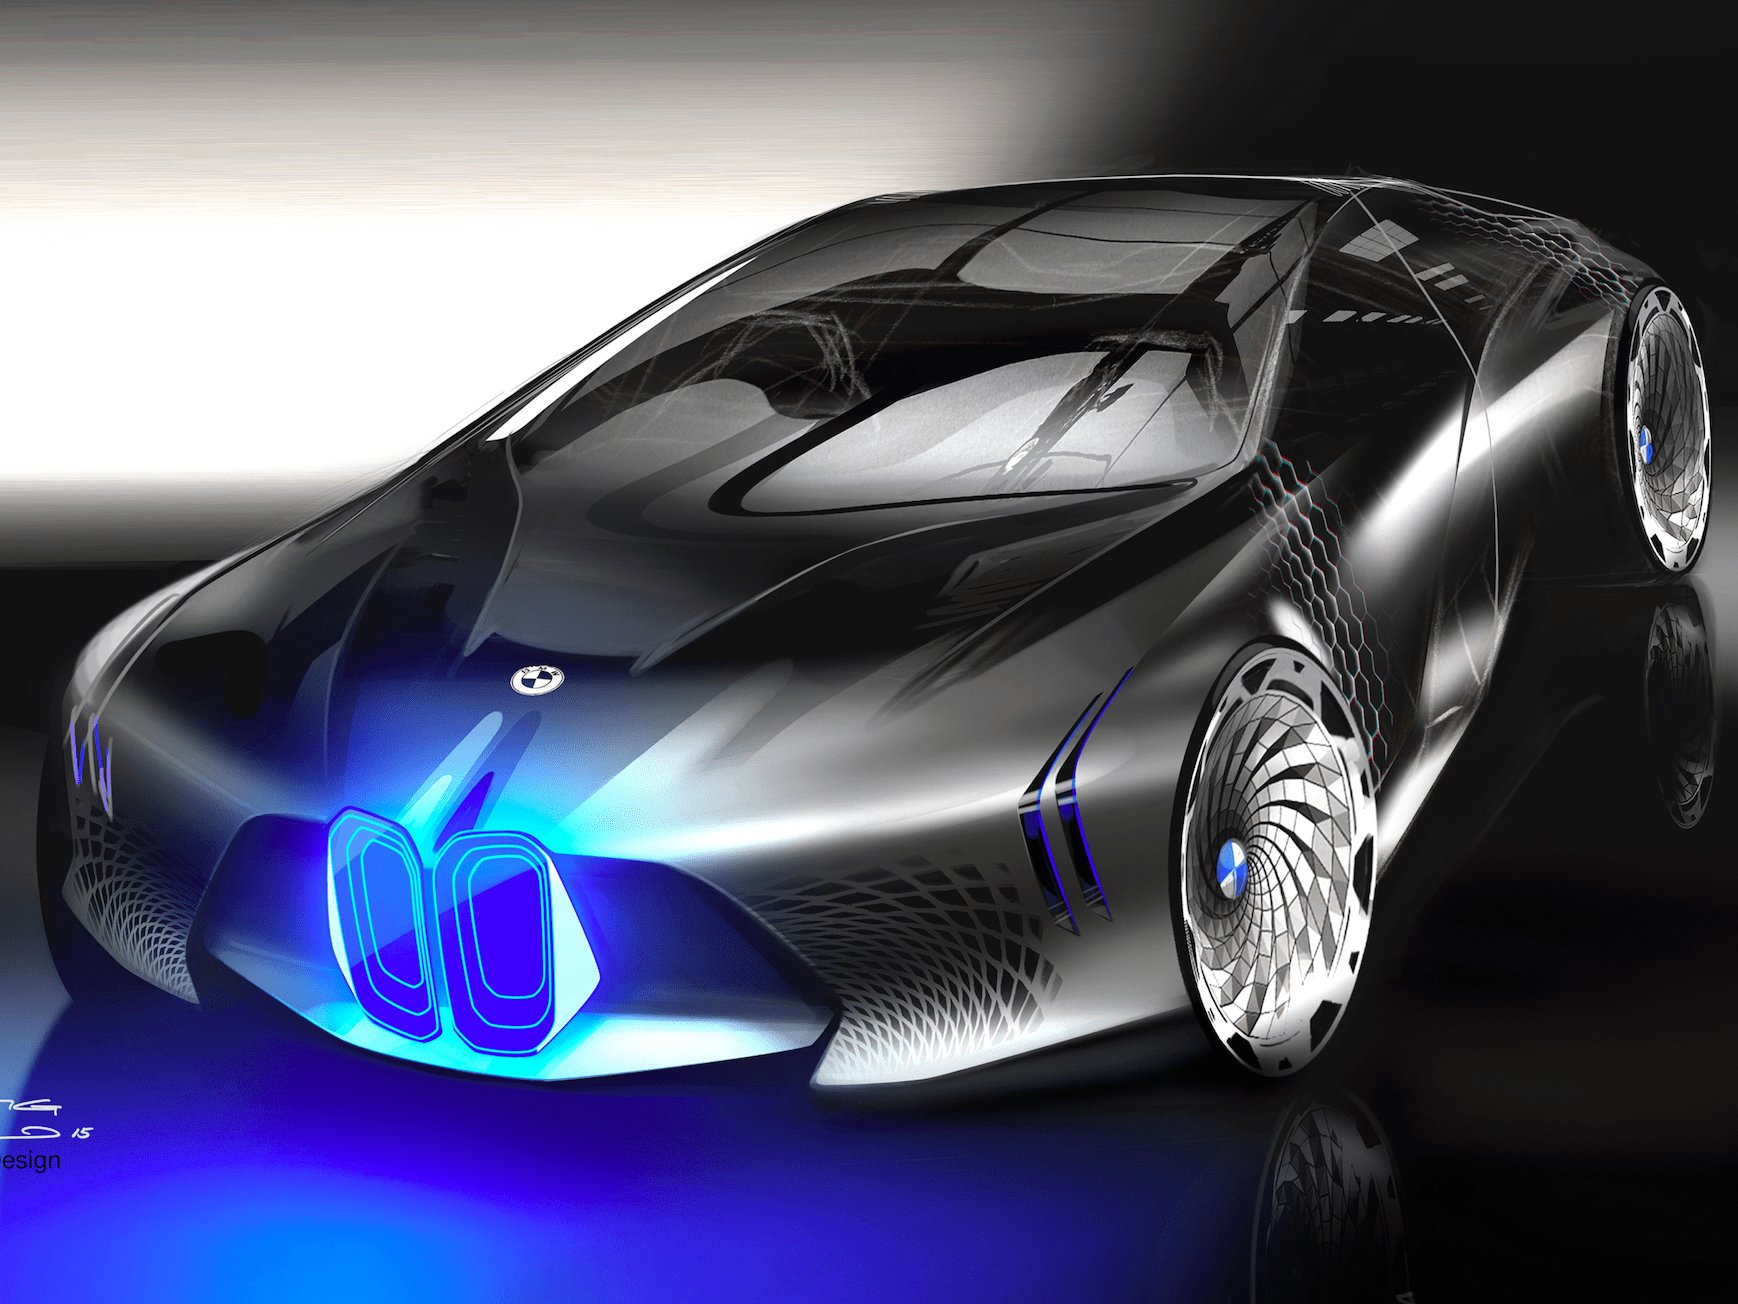 Latest Bmw Just Unveiled Its Mind Blowing Vision For Cars 100 Free Download